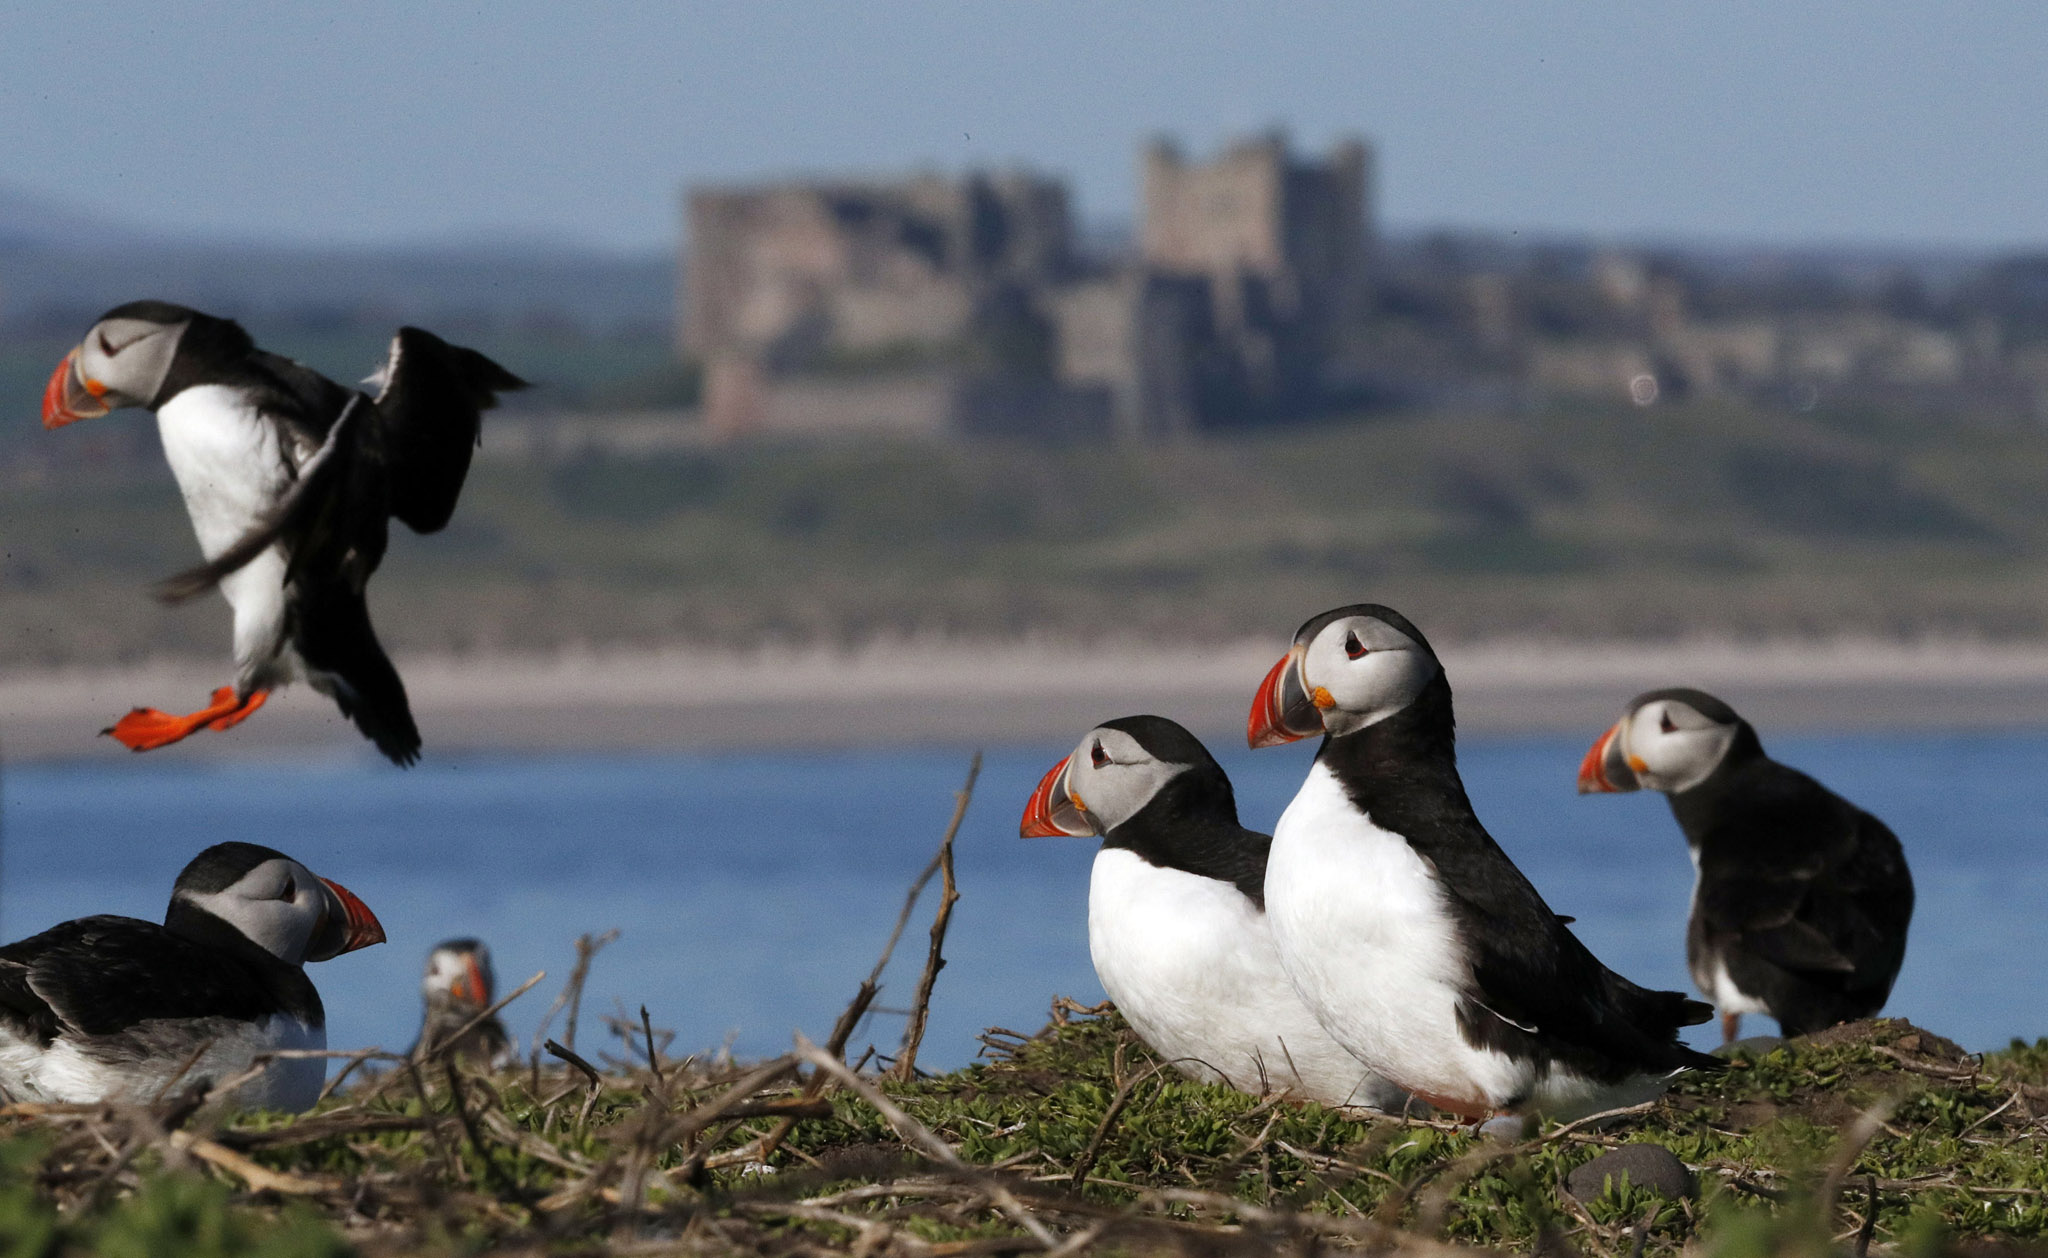 Birds on Farne Islands...Puffins join Shags and Guillemot birds  on the Farne Islands just off the Northumberland coast for the start of the breading season. PRESS ASSOCIATION Photo. Picture date: Wednesday April 20, 2016. Rangers on one of Britain's most important seabird colonies are hoping for a more successful summer after flooding wreaked havoc last year. See PA story NATURE Puffins. Photo credit should read: Owen Humphreys/PA Wire